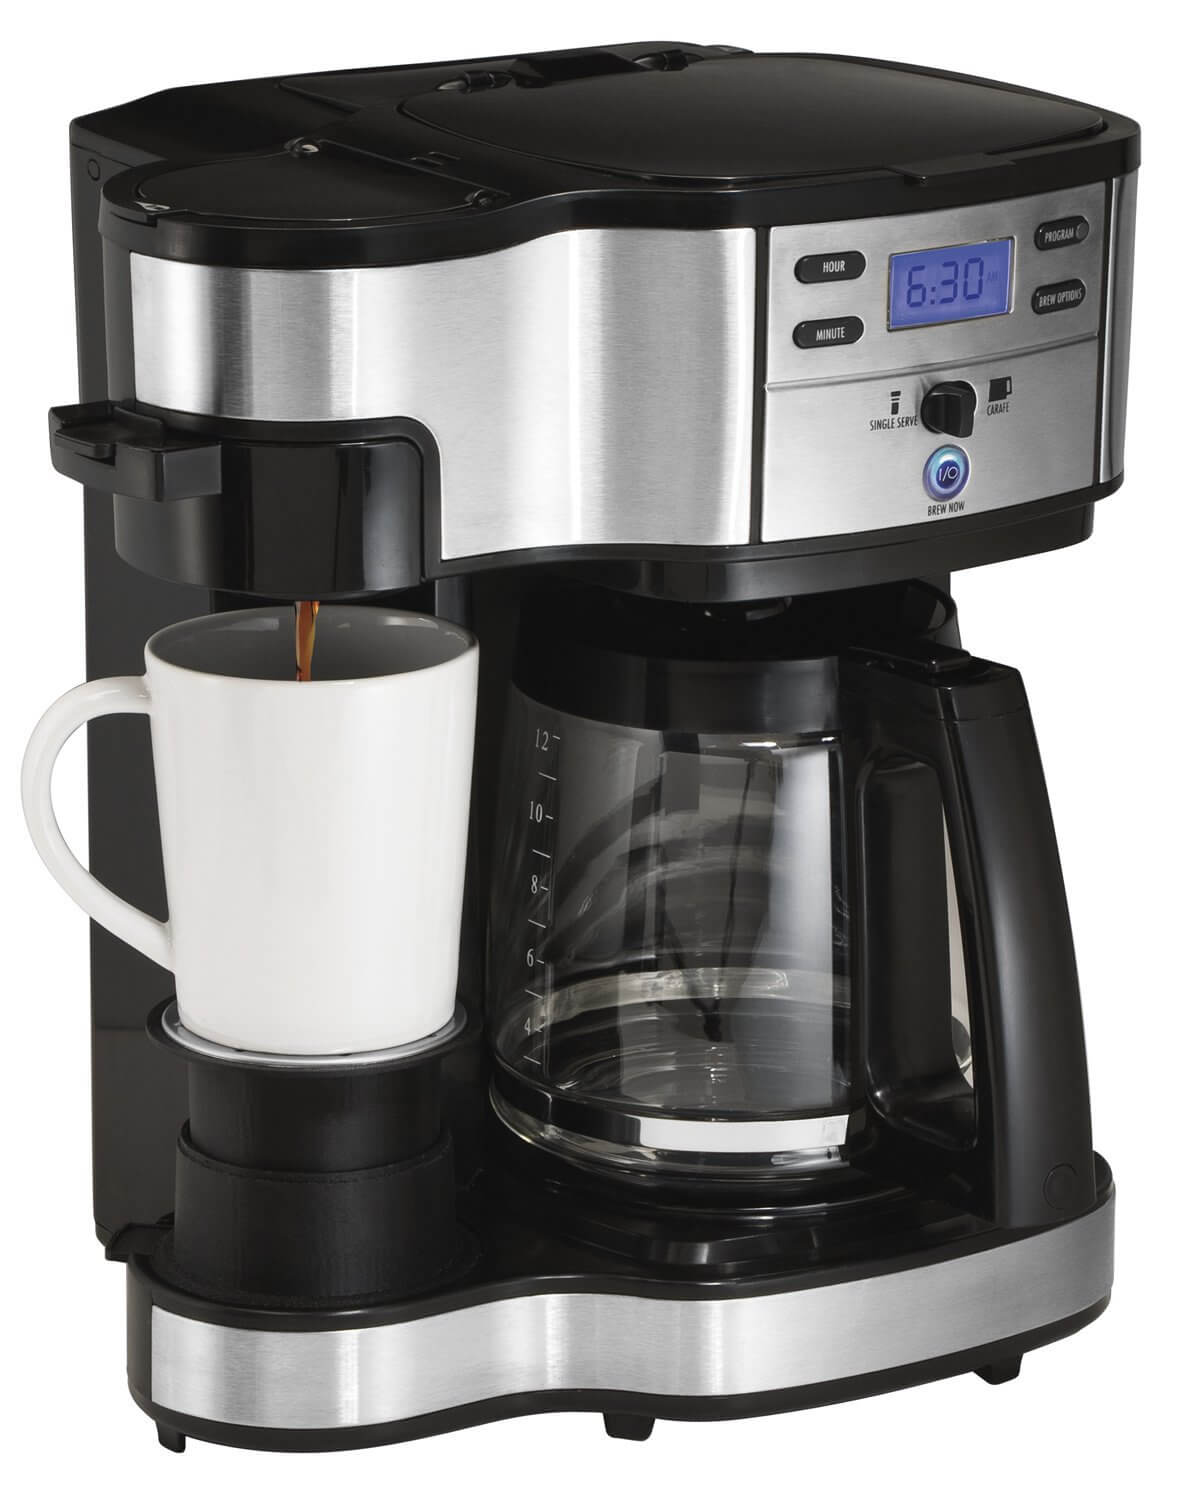 Hamilton Beach 2-Way Single Serve Coffee Maker | On The Review